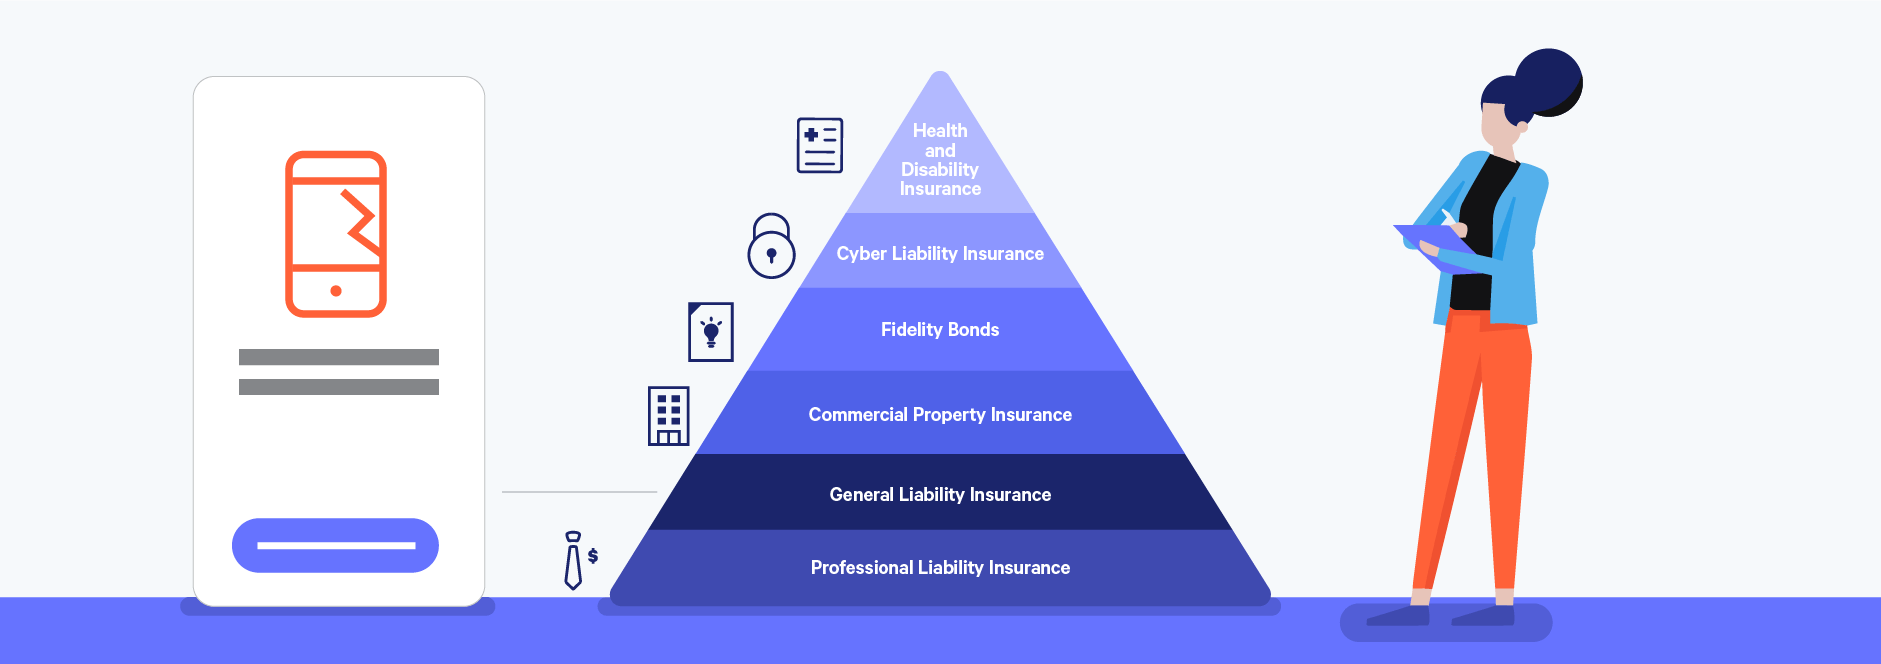 general liability insurance as a key freelance insurance policy illustration